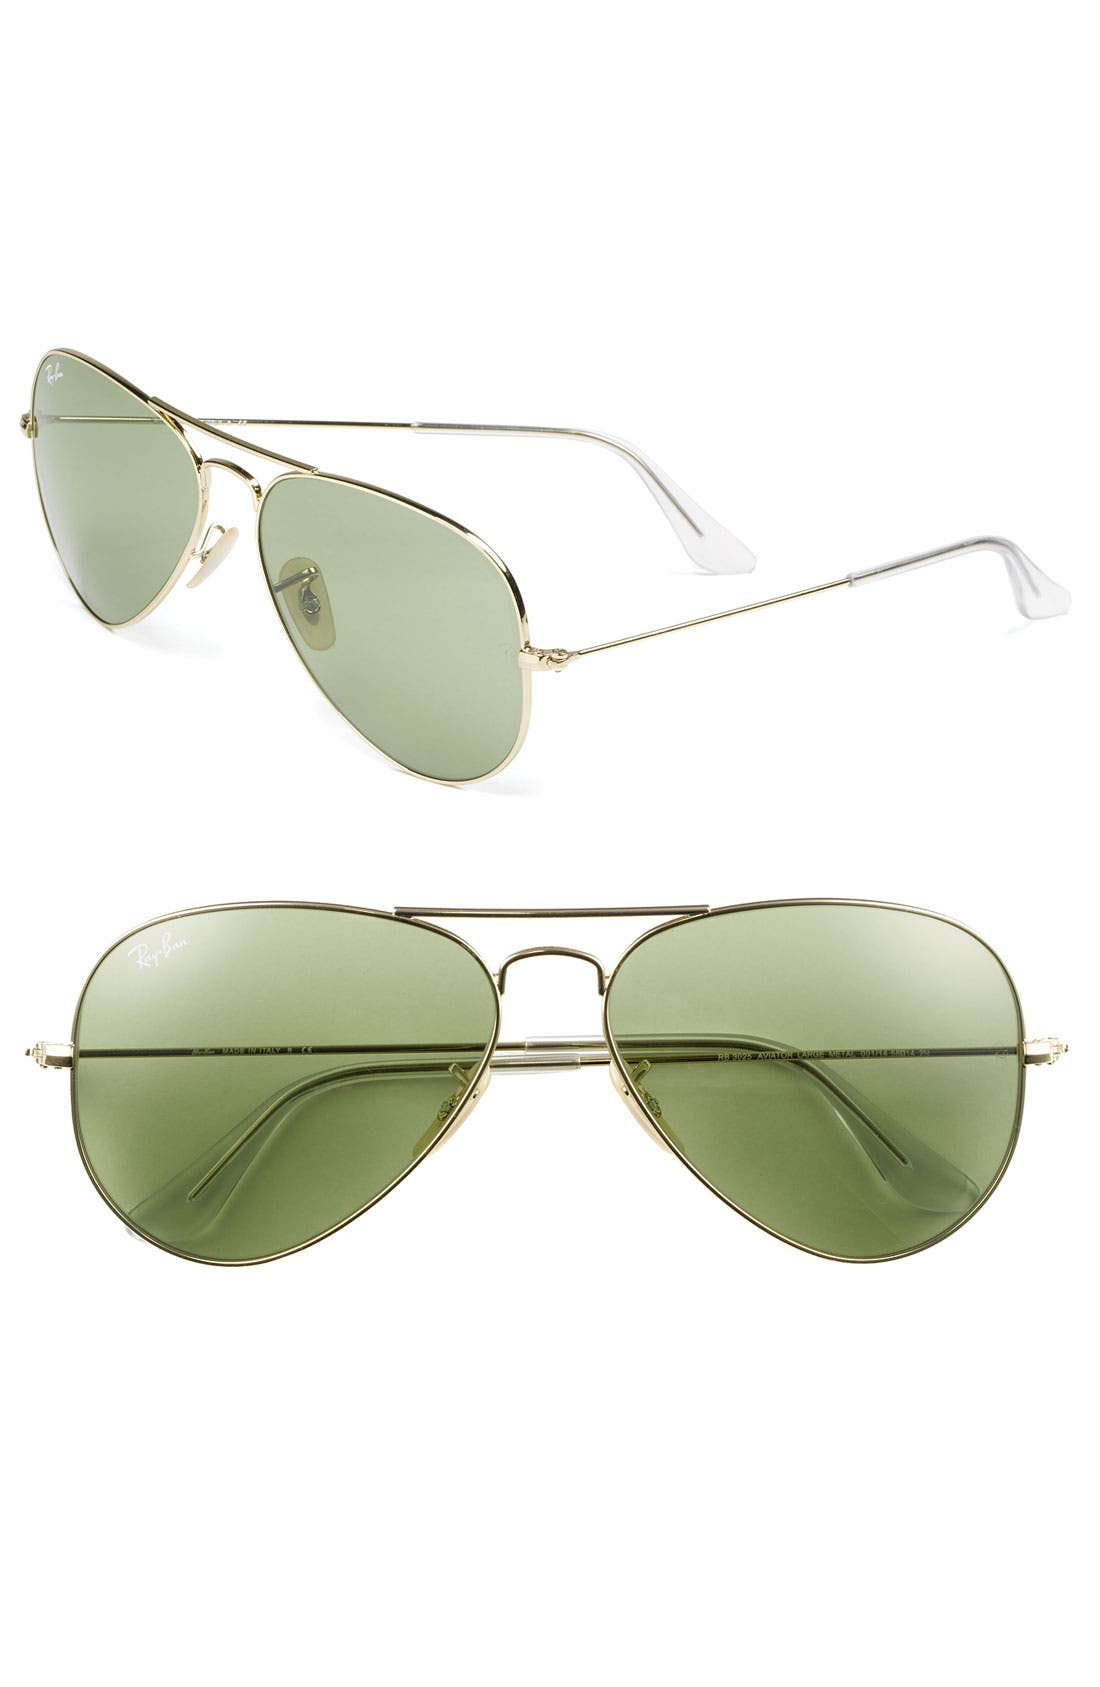 Alternate Image 1 Selected - Ray-Ban 'Legend Collection' 58mm Aviator Sunglasses